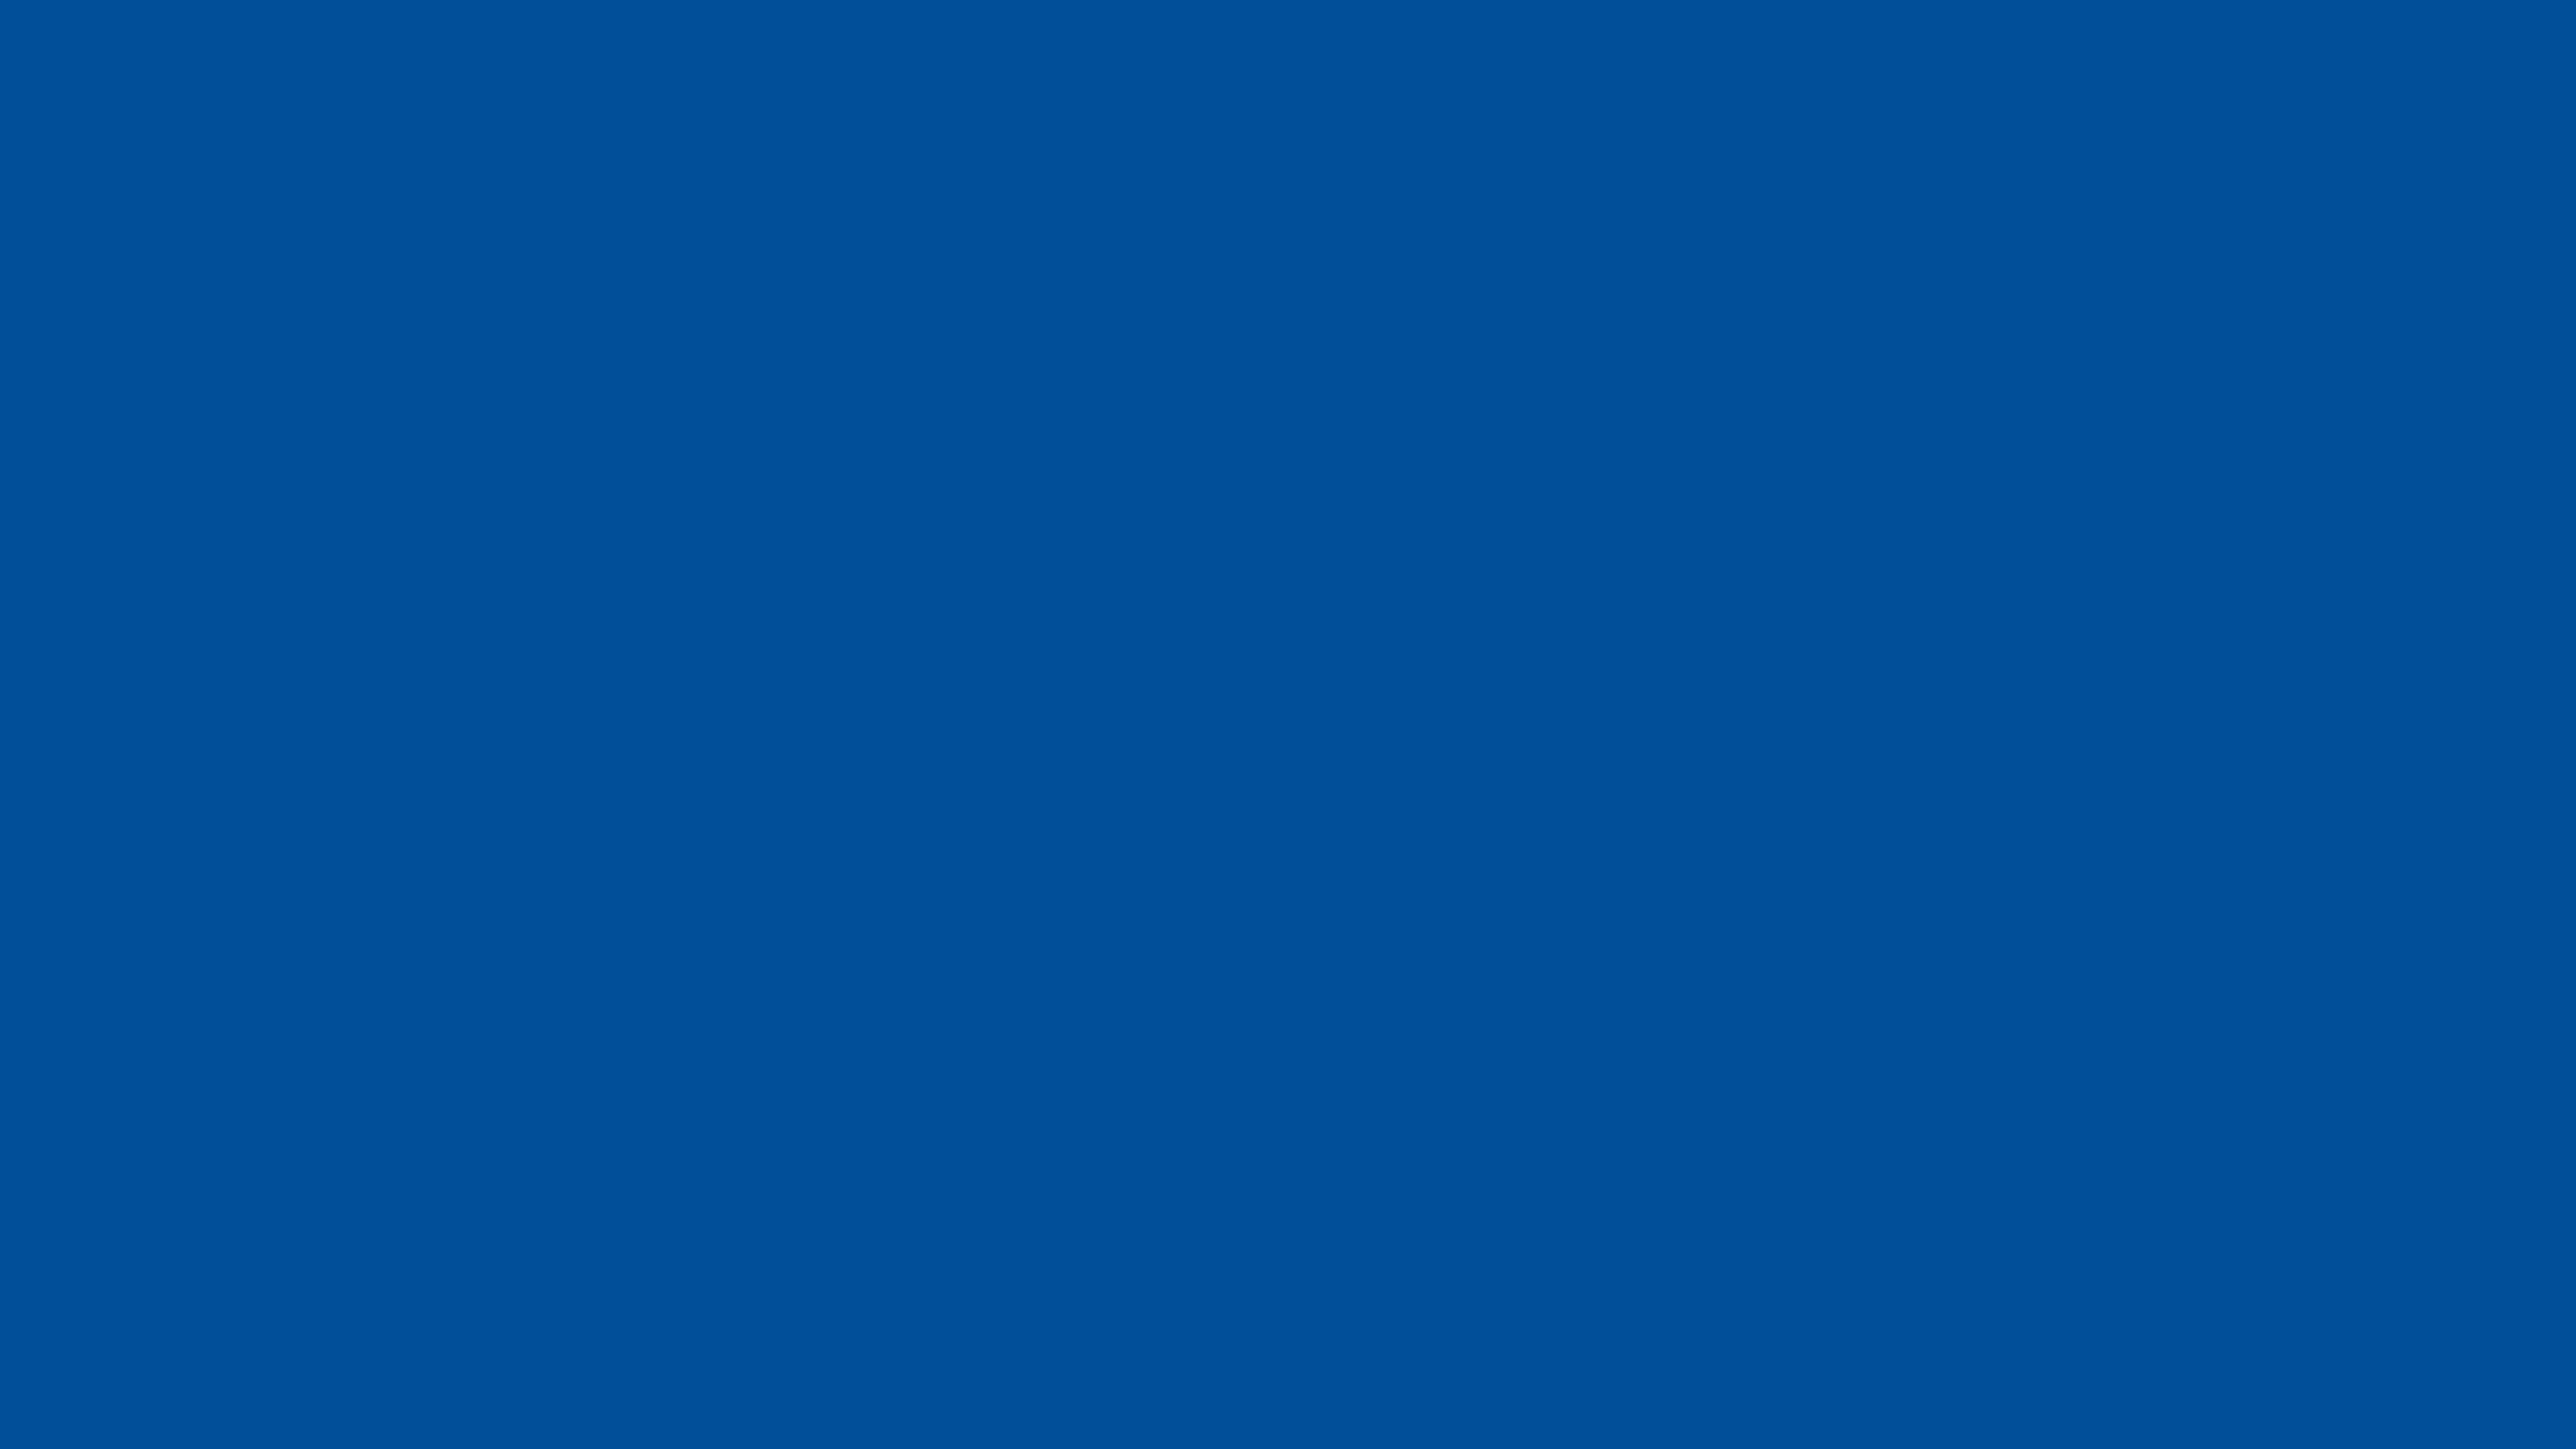 3840x2160 USAFA Blue Solid Color Background